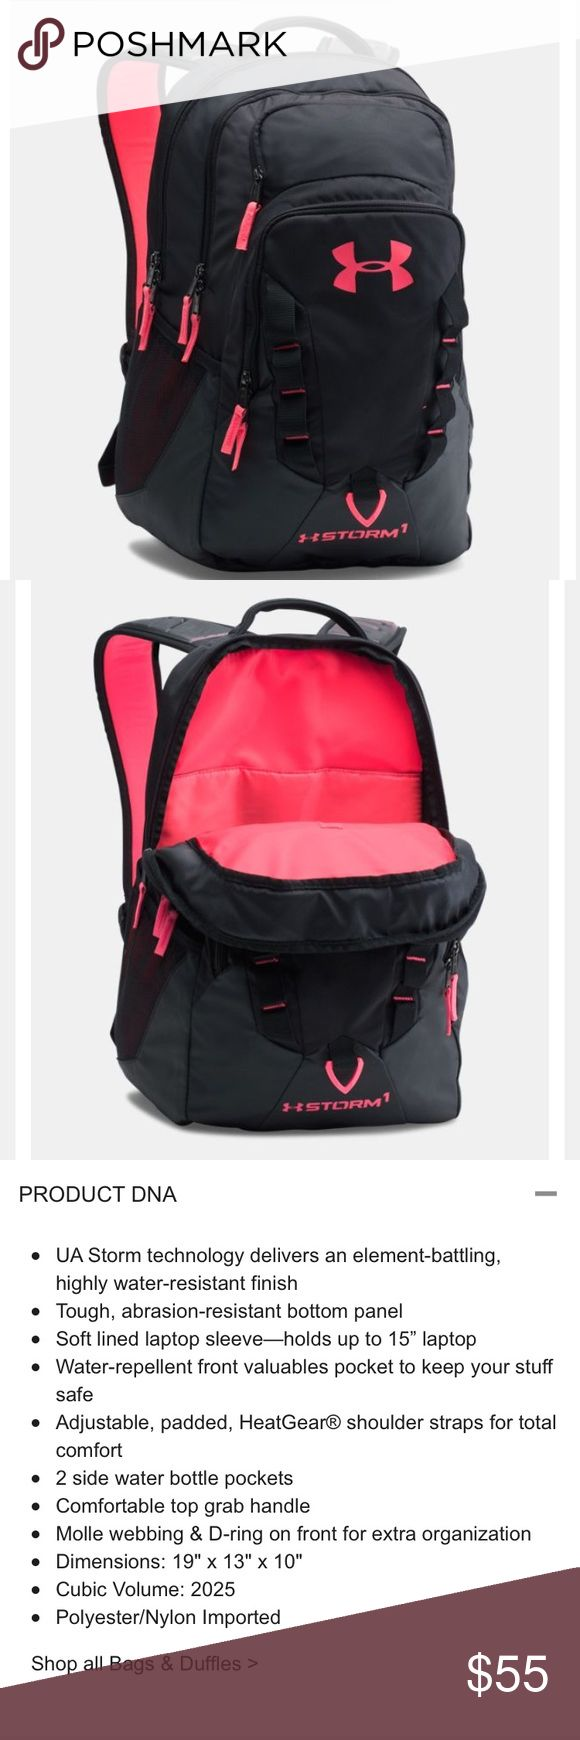 Under Armour Storm Recruit Backpack BRAND NEW WITH TAGS AND IN BAG! FIRM PRICE!!! Black and bright pink Under Armour Backpack.  Super Cute! From a pet and smoke free home. Under Armour Other